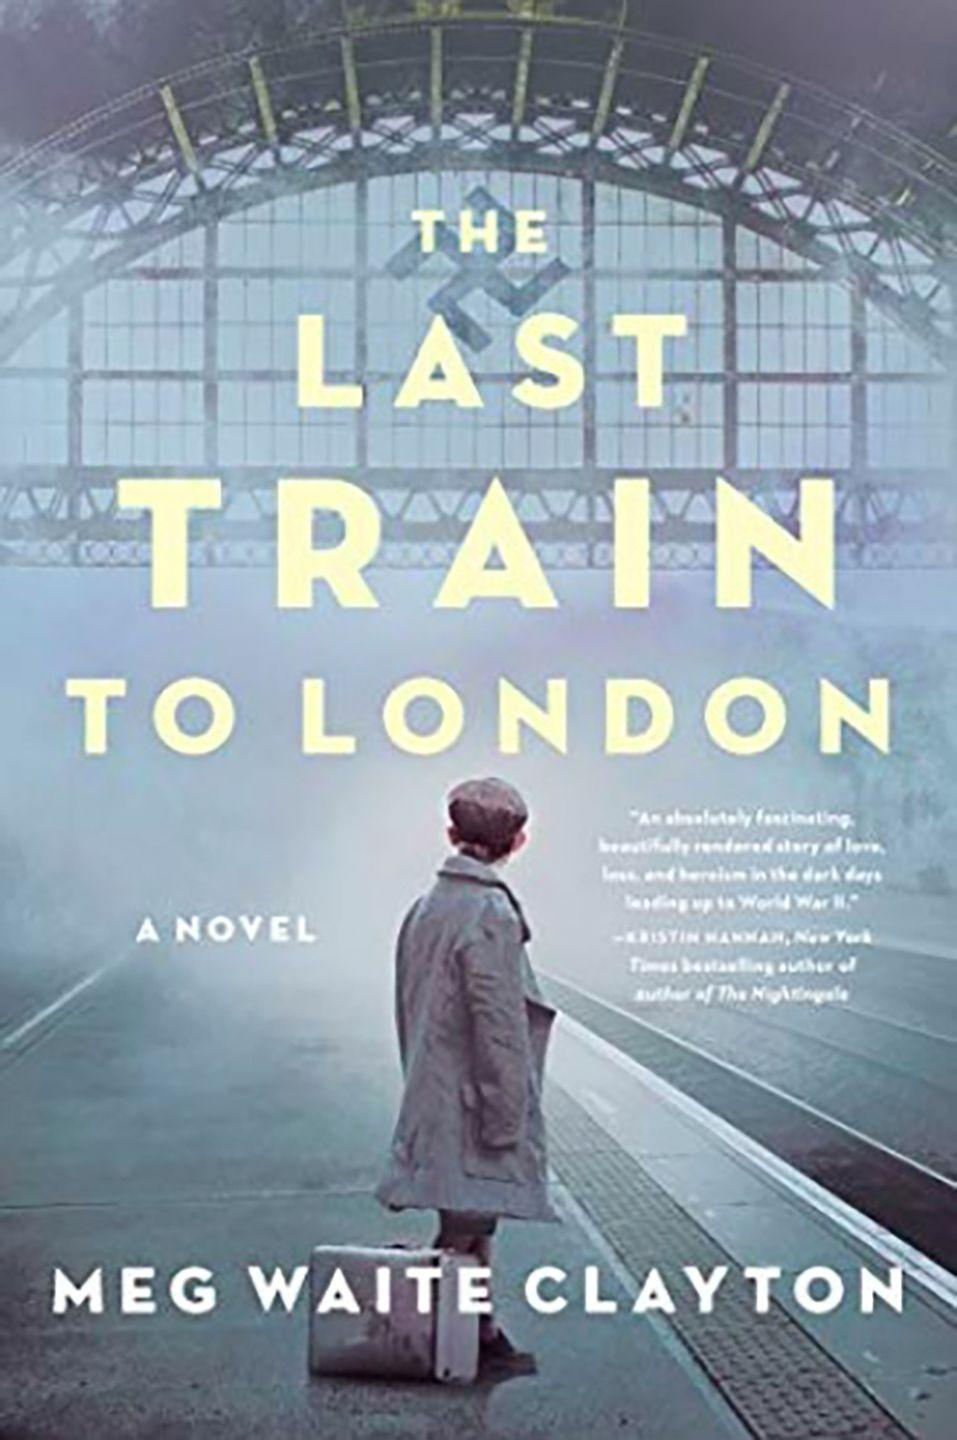 """<p><a class=""""link rapid-noclick-resp"""" href=""""https://www.amazon.co.uk/Last-Train-London-Novel-ebook/dp/B07NL8TTQS/ref=sr_1_1?keywords=The+Last+Train+to+London+by+Meg+Waite+Clayton&qid=1567162190&s=gateway&sr=8-1&tag=hearstuk-yahoo-21&ascsubtag=%5Bartid%7C1919.g.15922606%5Bsrc%7Cyahoo-uk"""" rel=""""nofollow noopener"""" target=""""_blank"""" data-ylk=""""slk:SHOP NOW"""">SHOP NOW</a> £7.99, Amazon</p><p>The Last Train To London centres on the Kindertransports - the rescue effort that carried thousands of children out of Nazi-occupied Europe. Stephan and Žofie-Helene's lives are thrown into crisis when the Nazi's tale control, but its one brace woman's mission to help them escape to safety.</p>"""